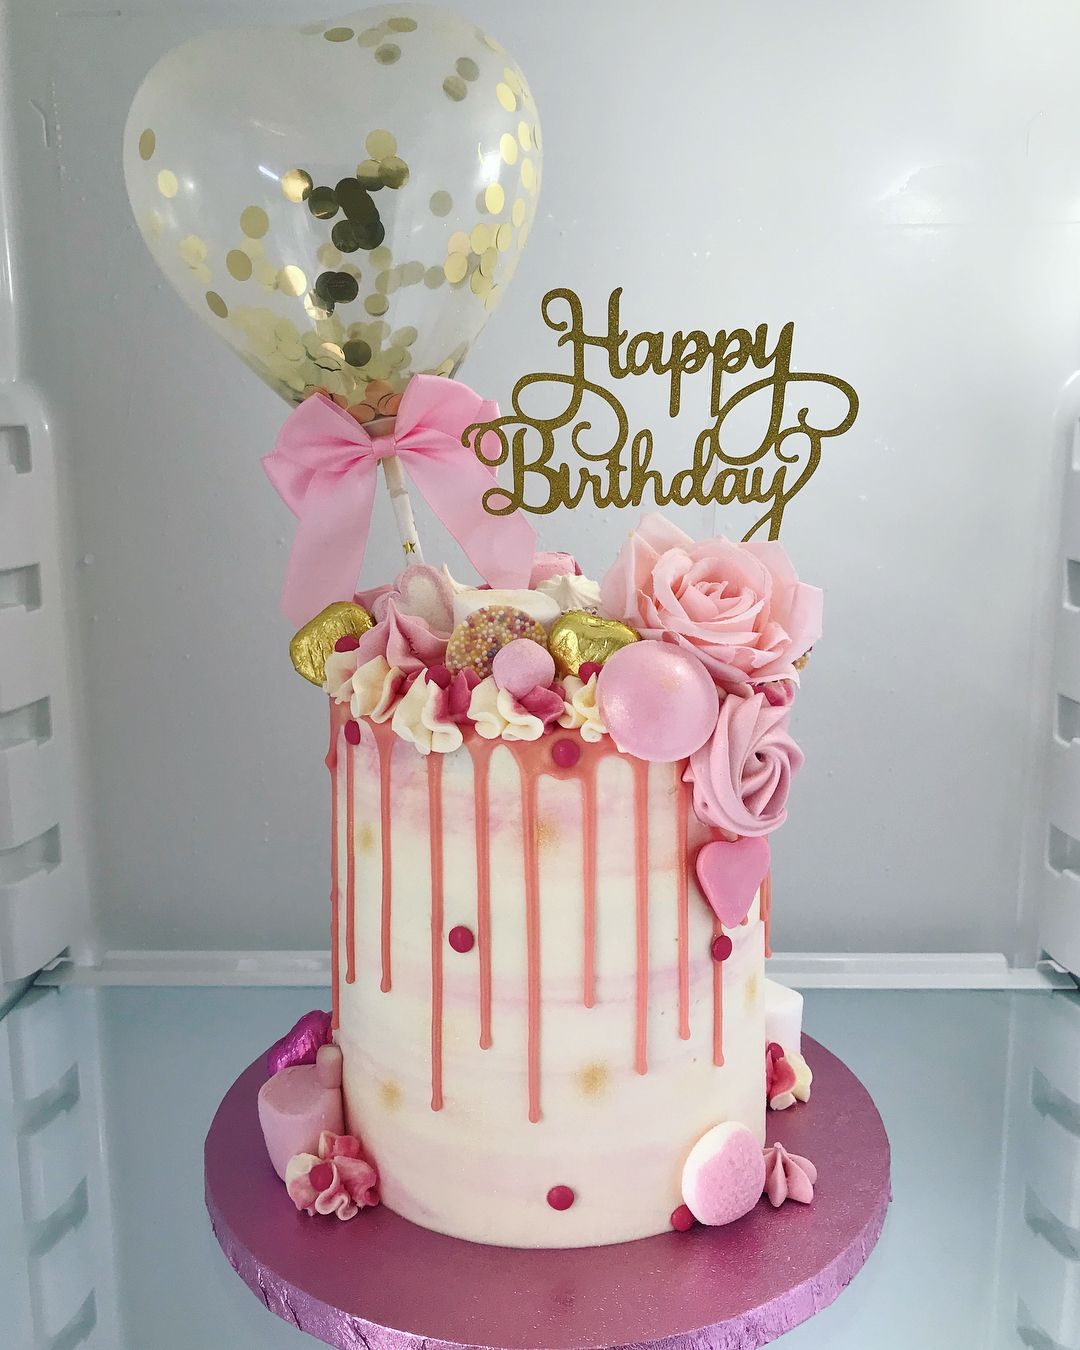 Incredible Lots Of Pink This Week Happy Birthday Balloon Cake For Sophl Personalised Birthday Cards Paralily Jamesorg